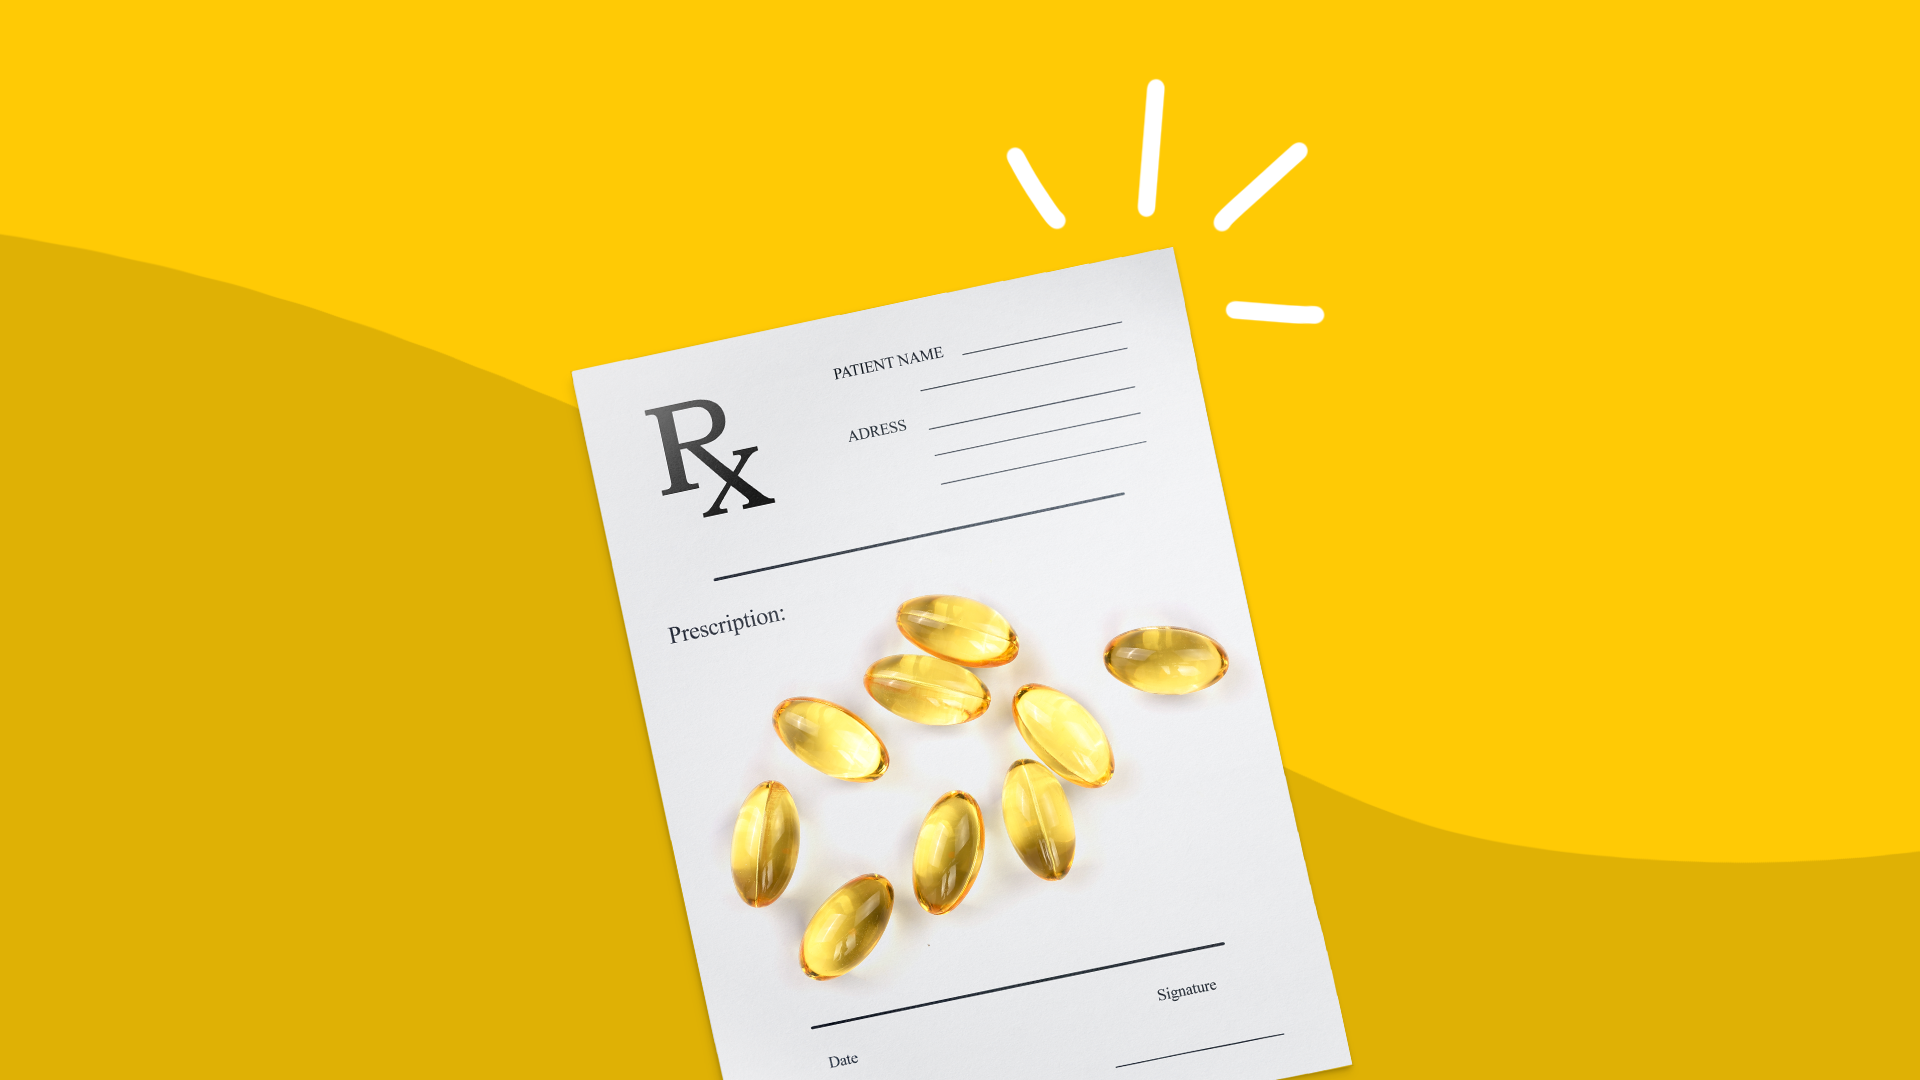 When would I need a prescription for vitamin D?